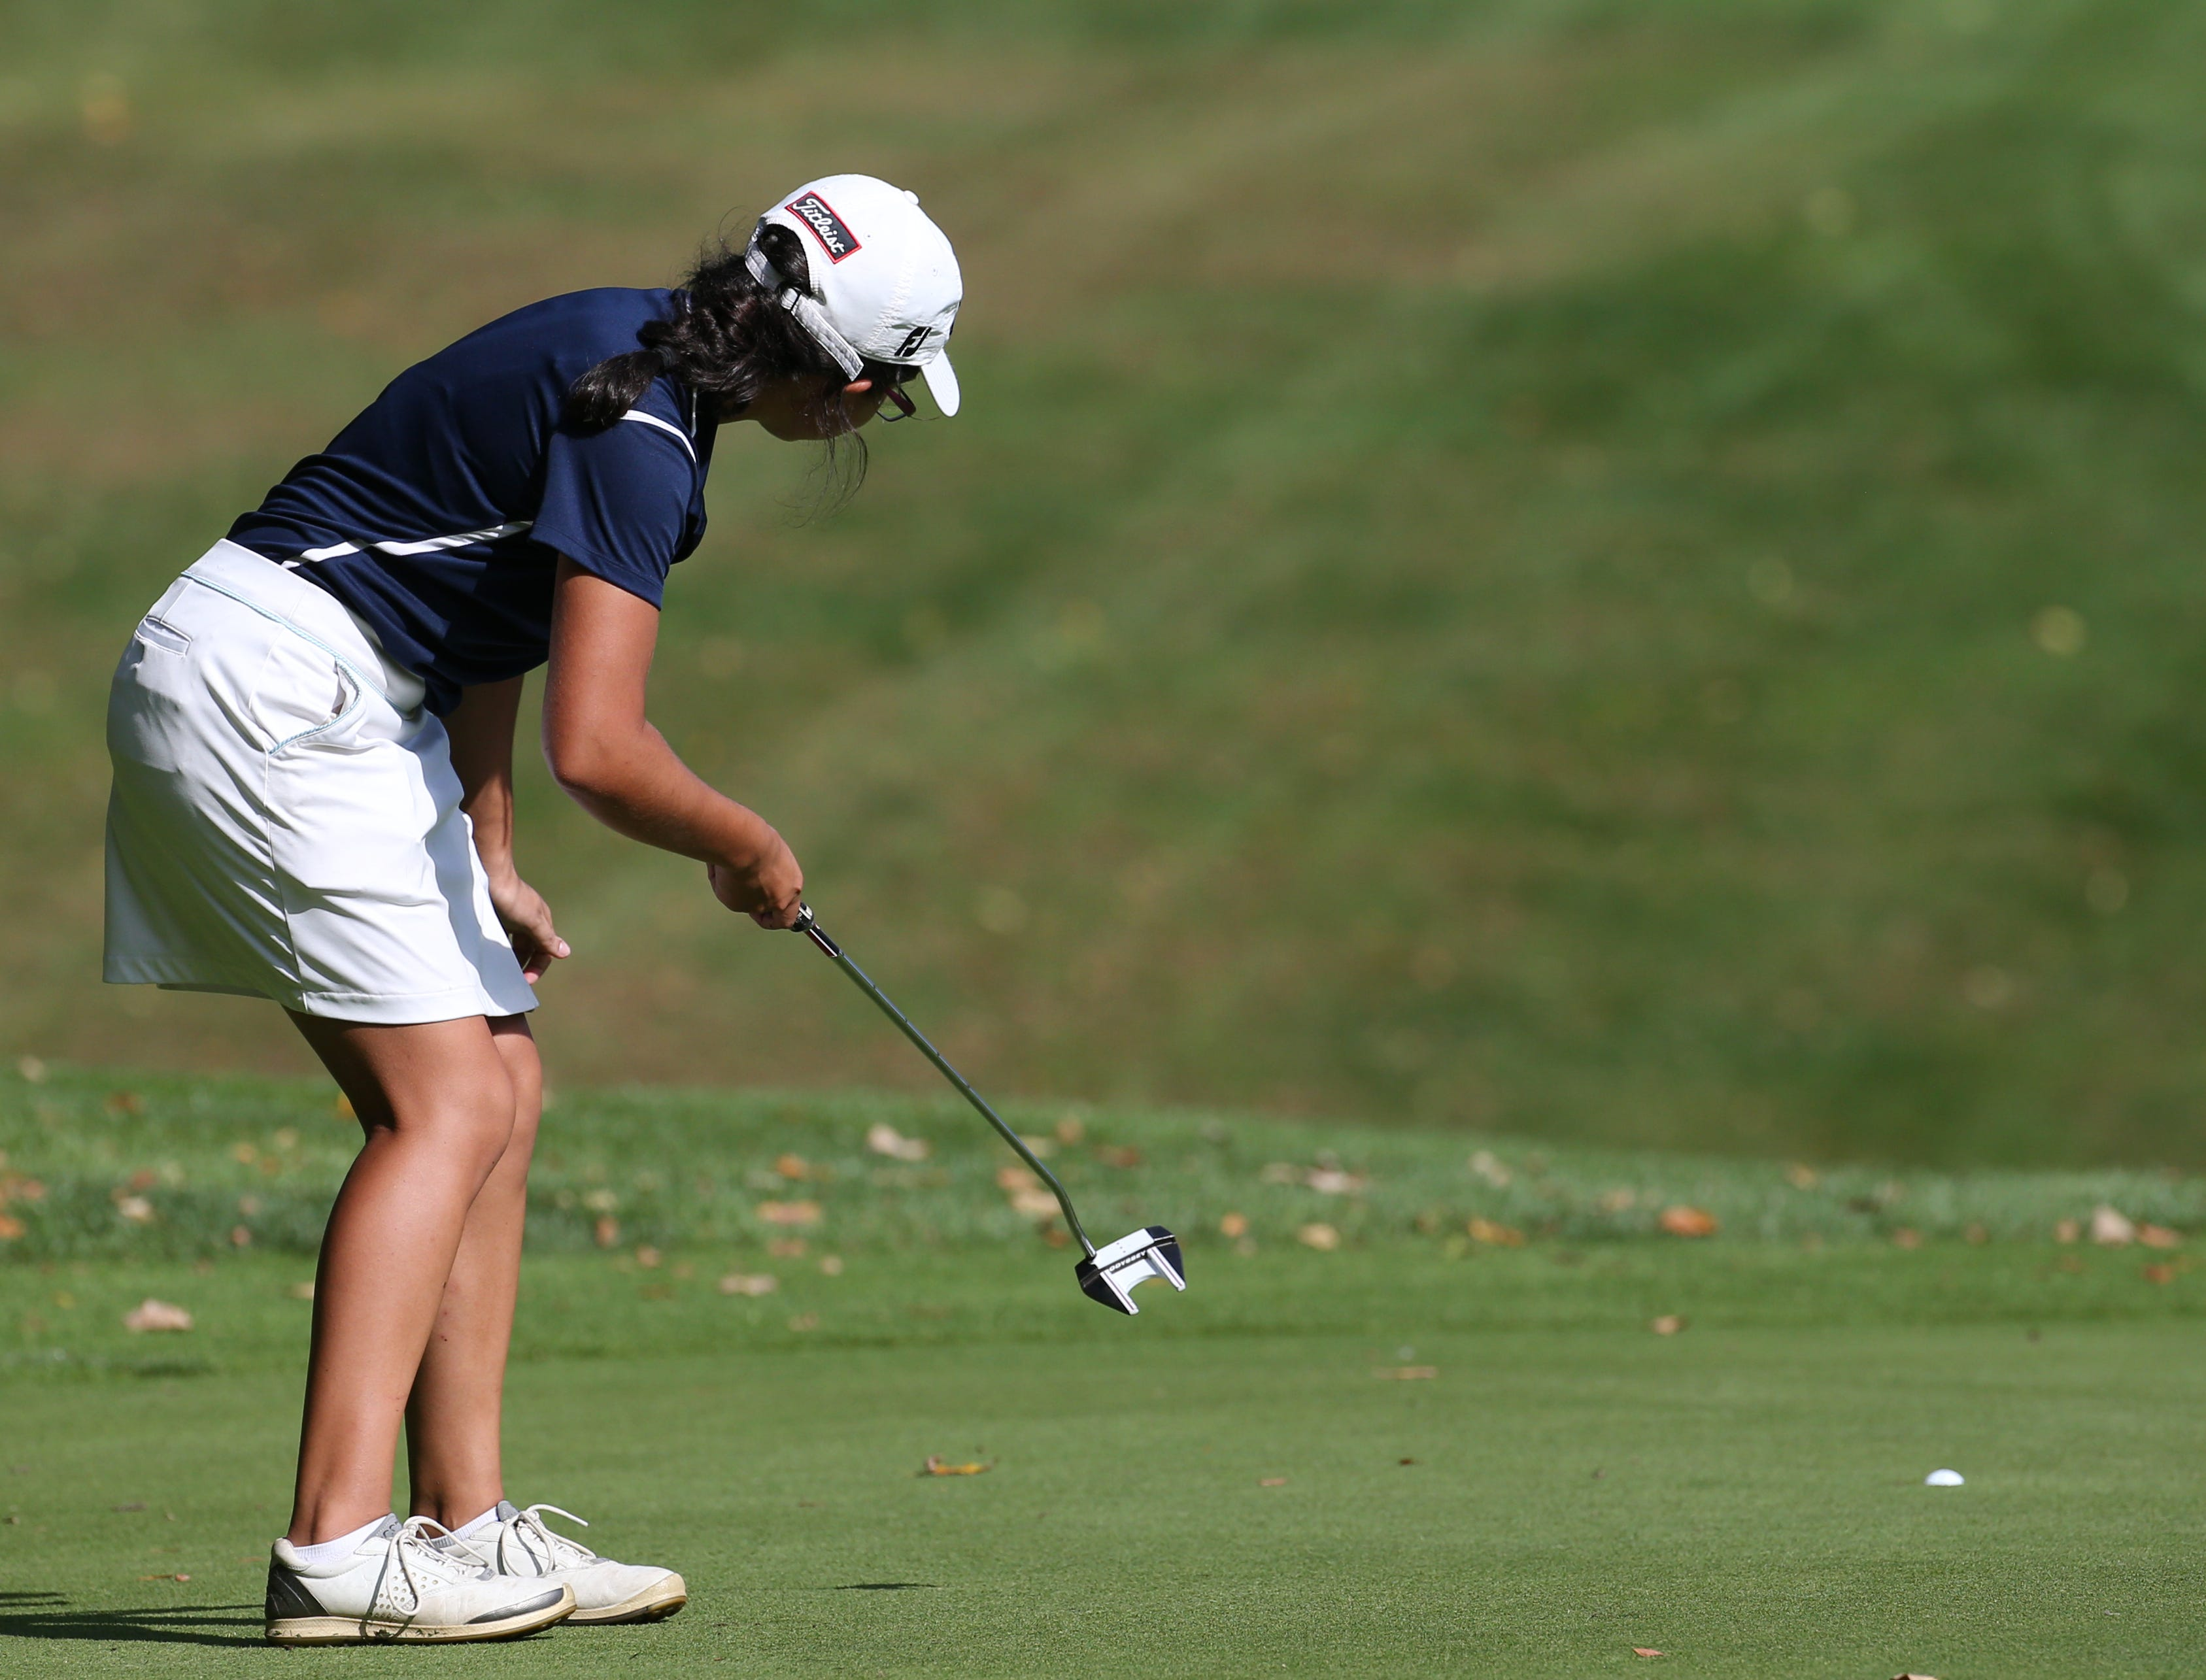 Athena Baronos reacts to making this putt on the eighth hole for birdie at Section V girls golf championship at Deerfield Country Club.